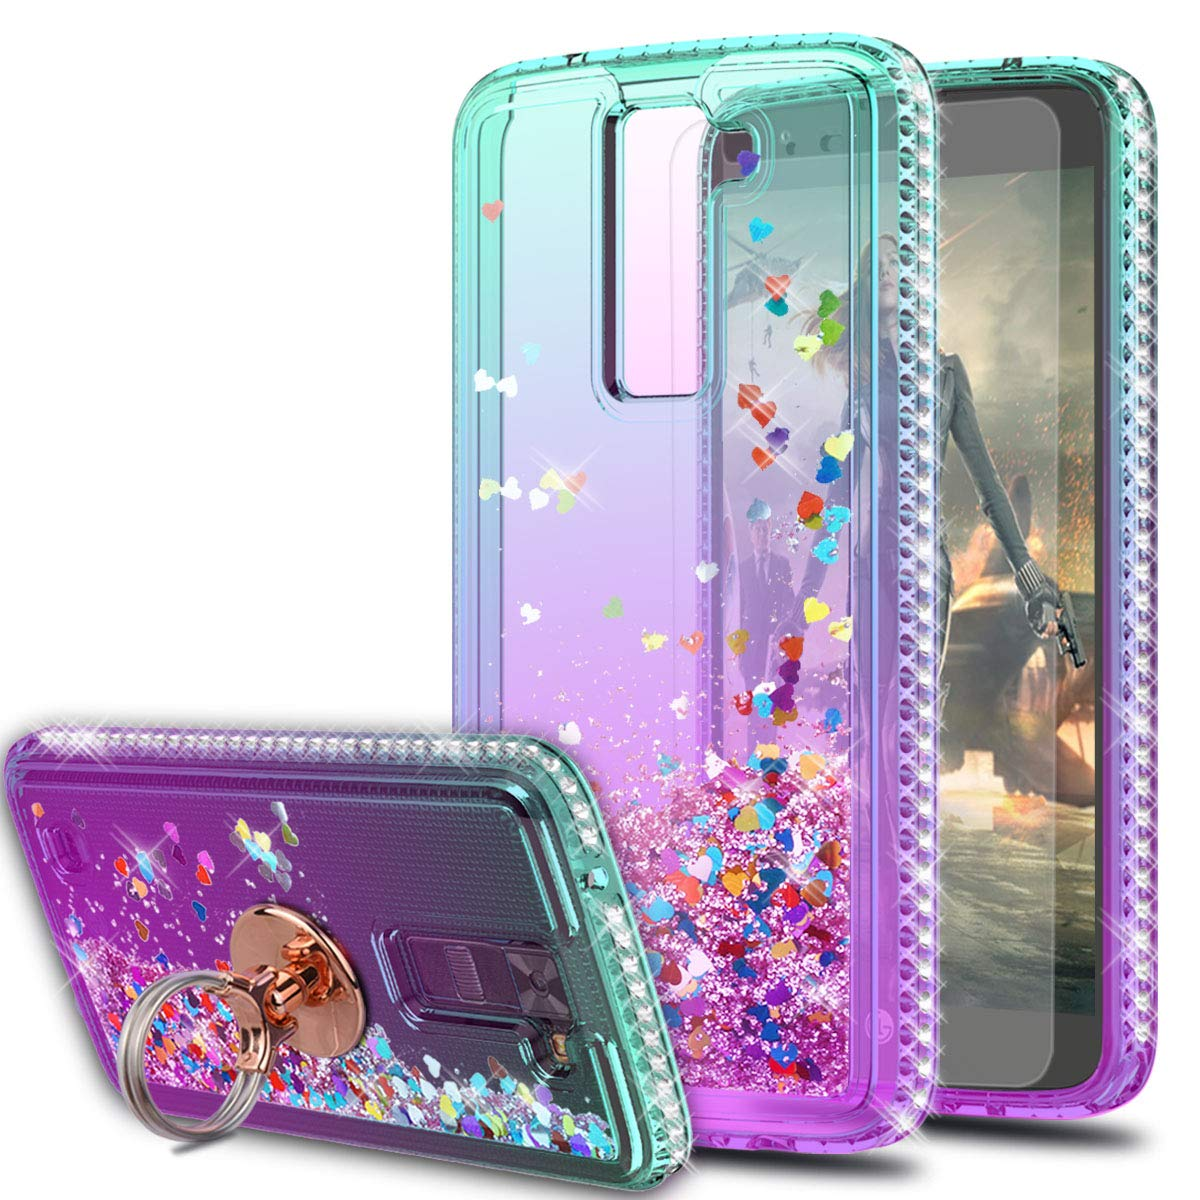 LG Tribute 5 Case,LG Escape 3/ LG Treasure/LG Phoenix 2 Case with HD Screen Protector with Ring Holder,KaiMai Glitter Moving Quicksand Clear Cute Shiny Phone Case for LG K7-Aqua/Purple Ring by KaiMai